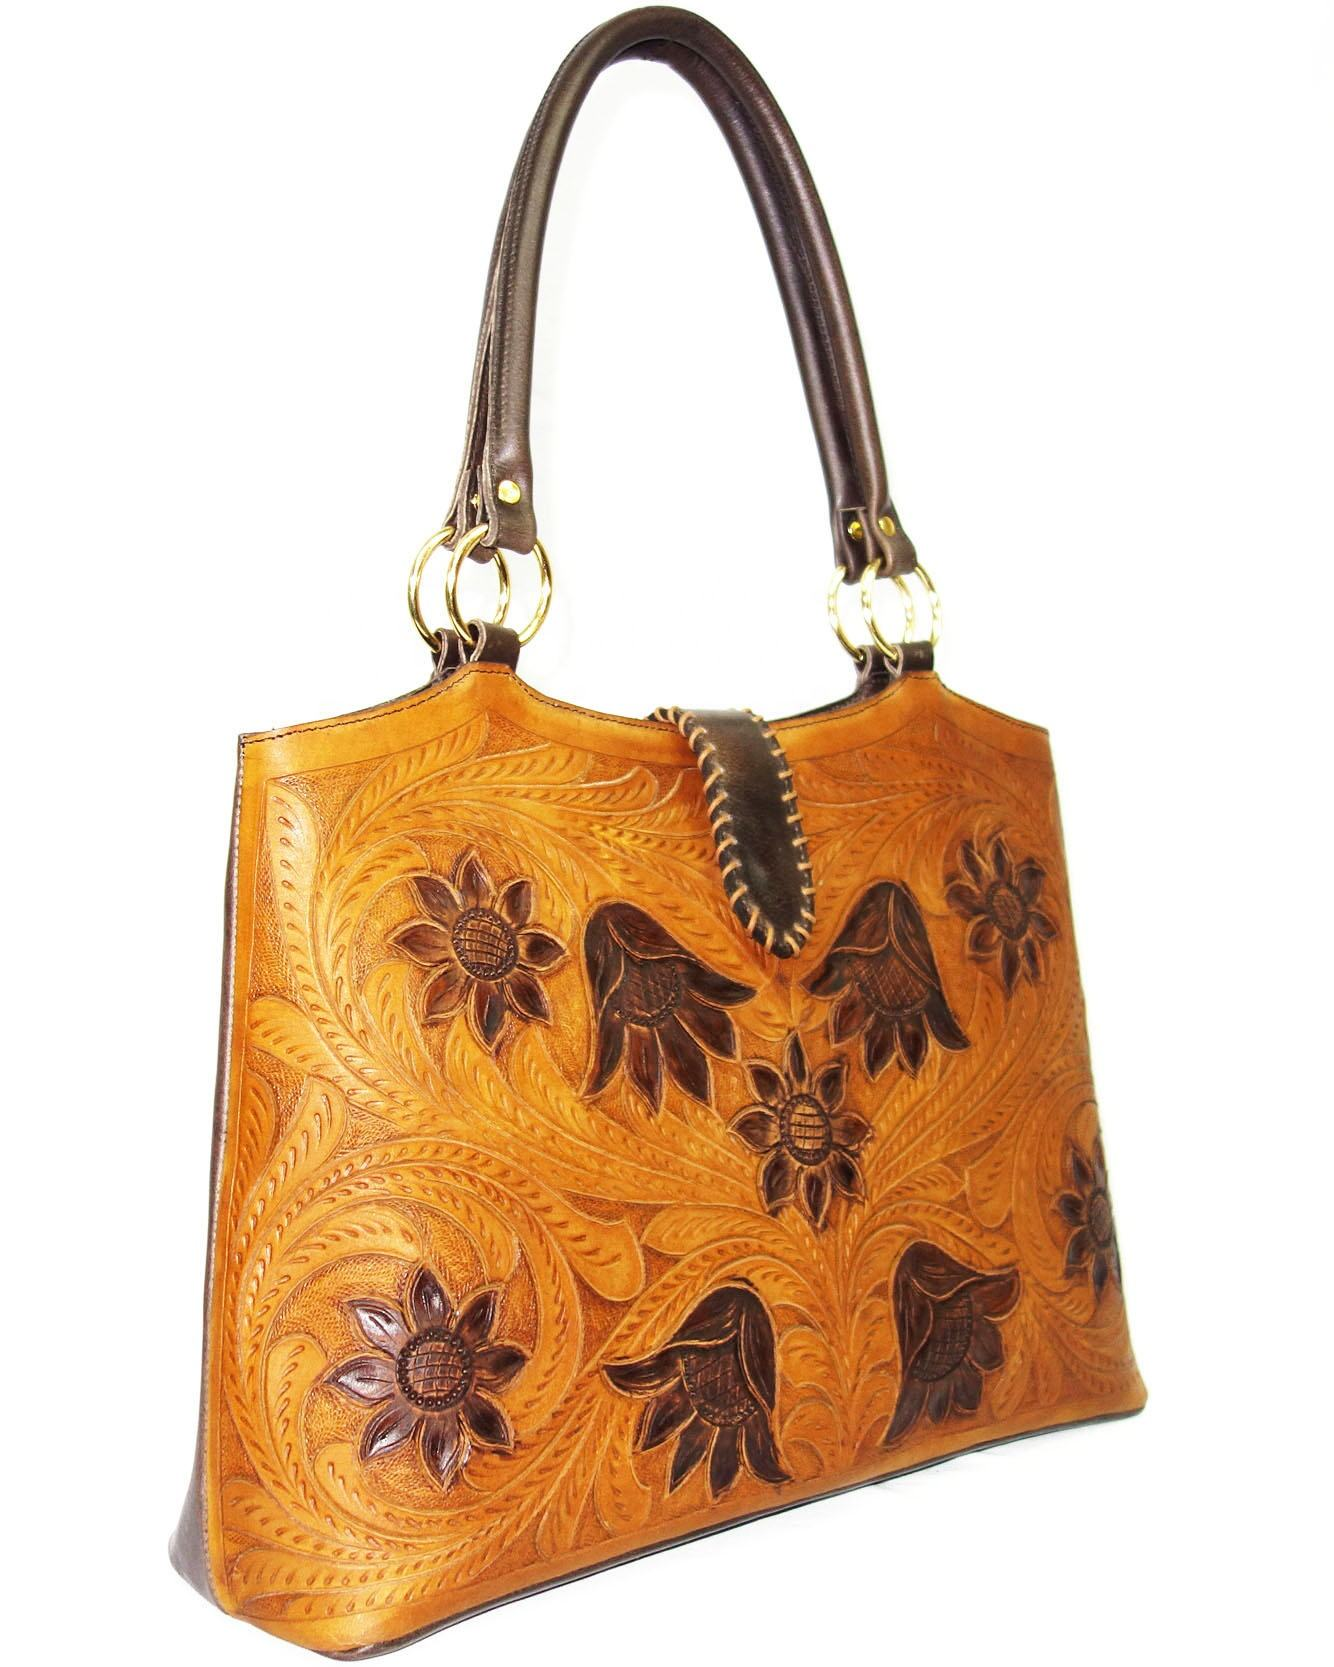 Wholesale Leather Handtooled Handbags in Mustard color, 100% Real Leather at Factory Price